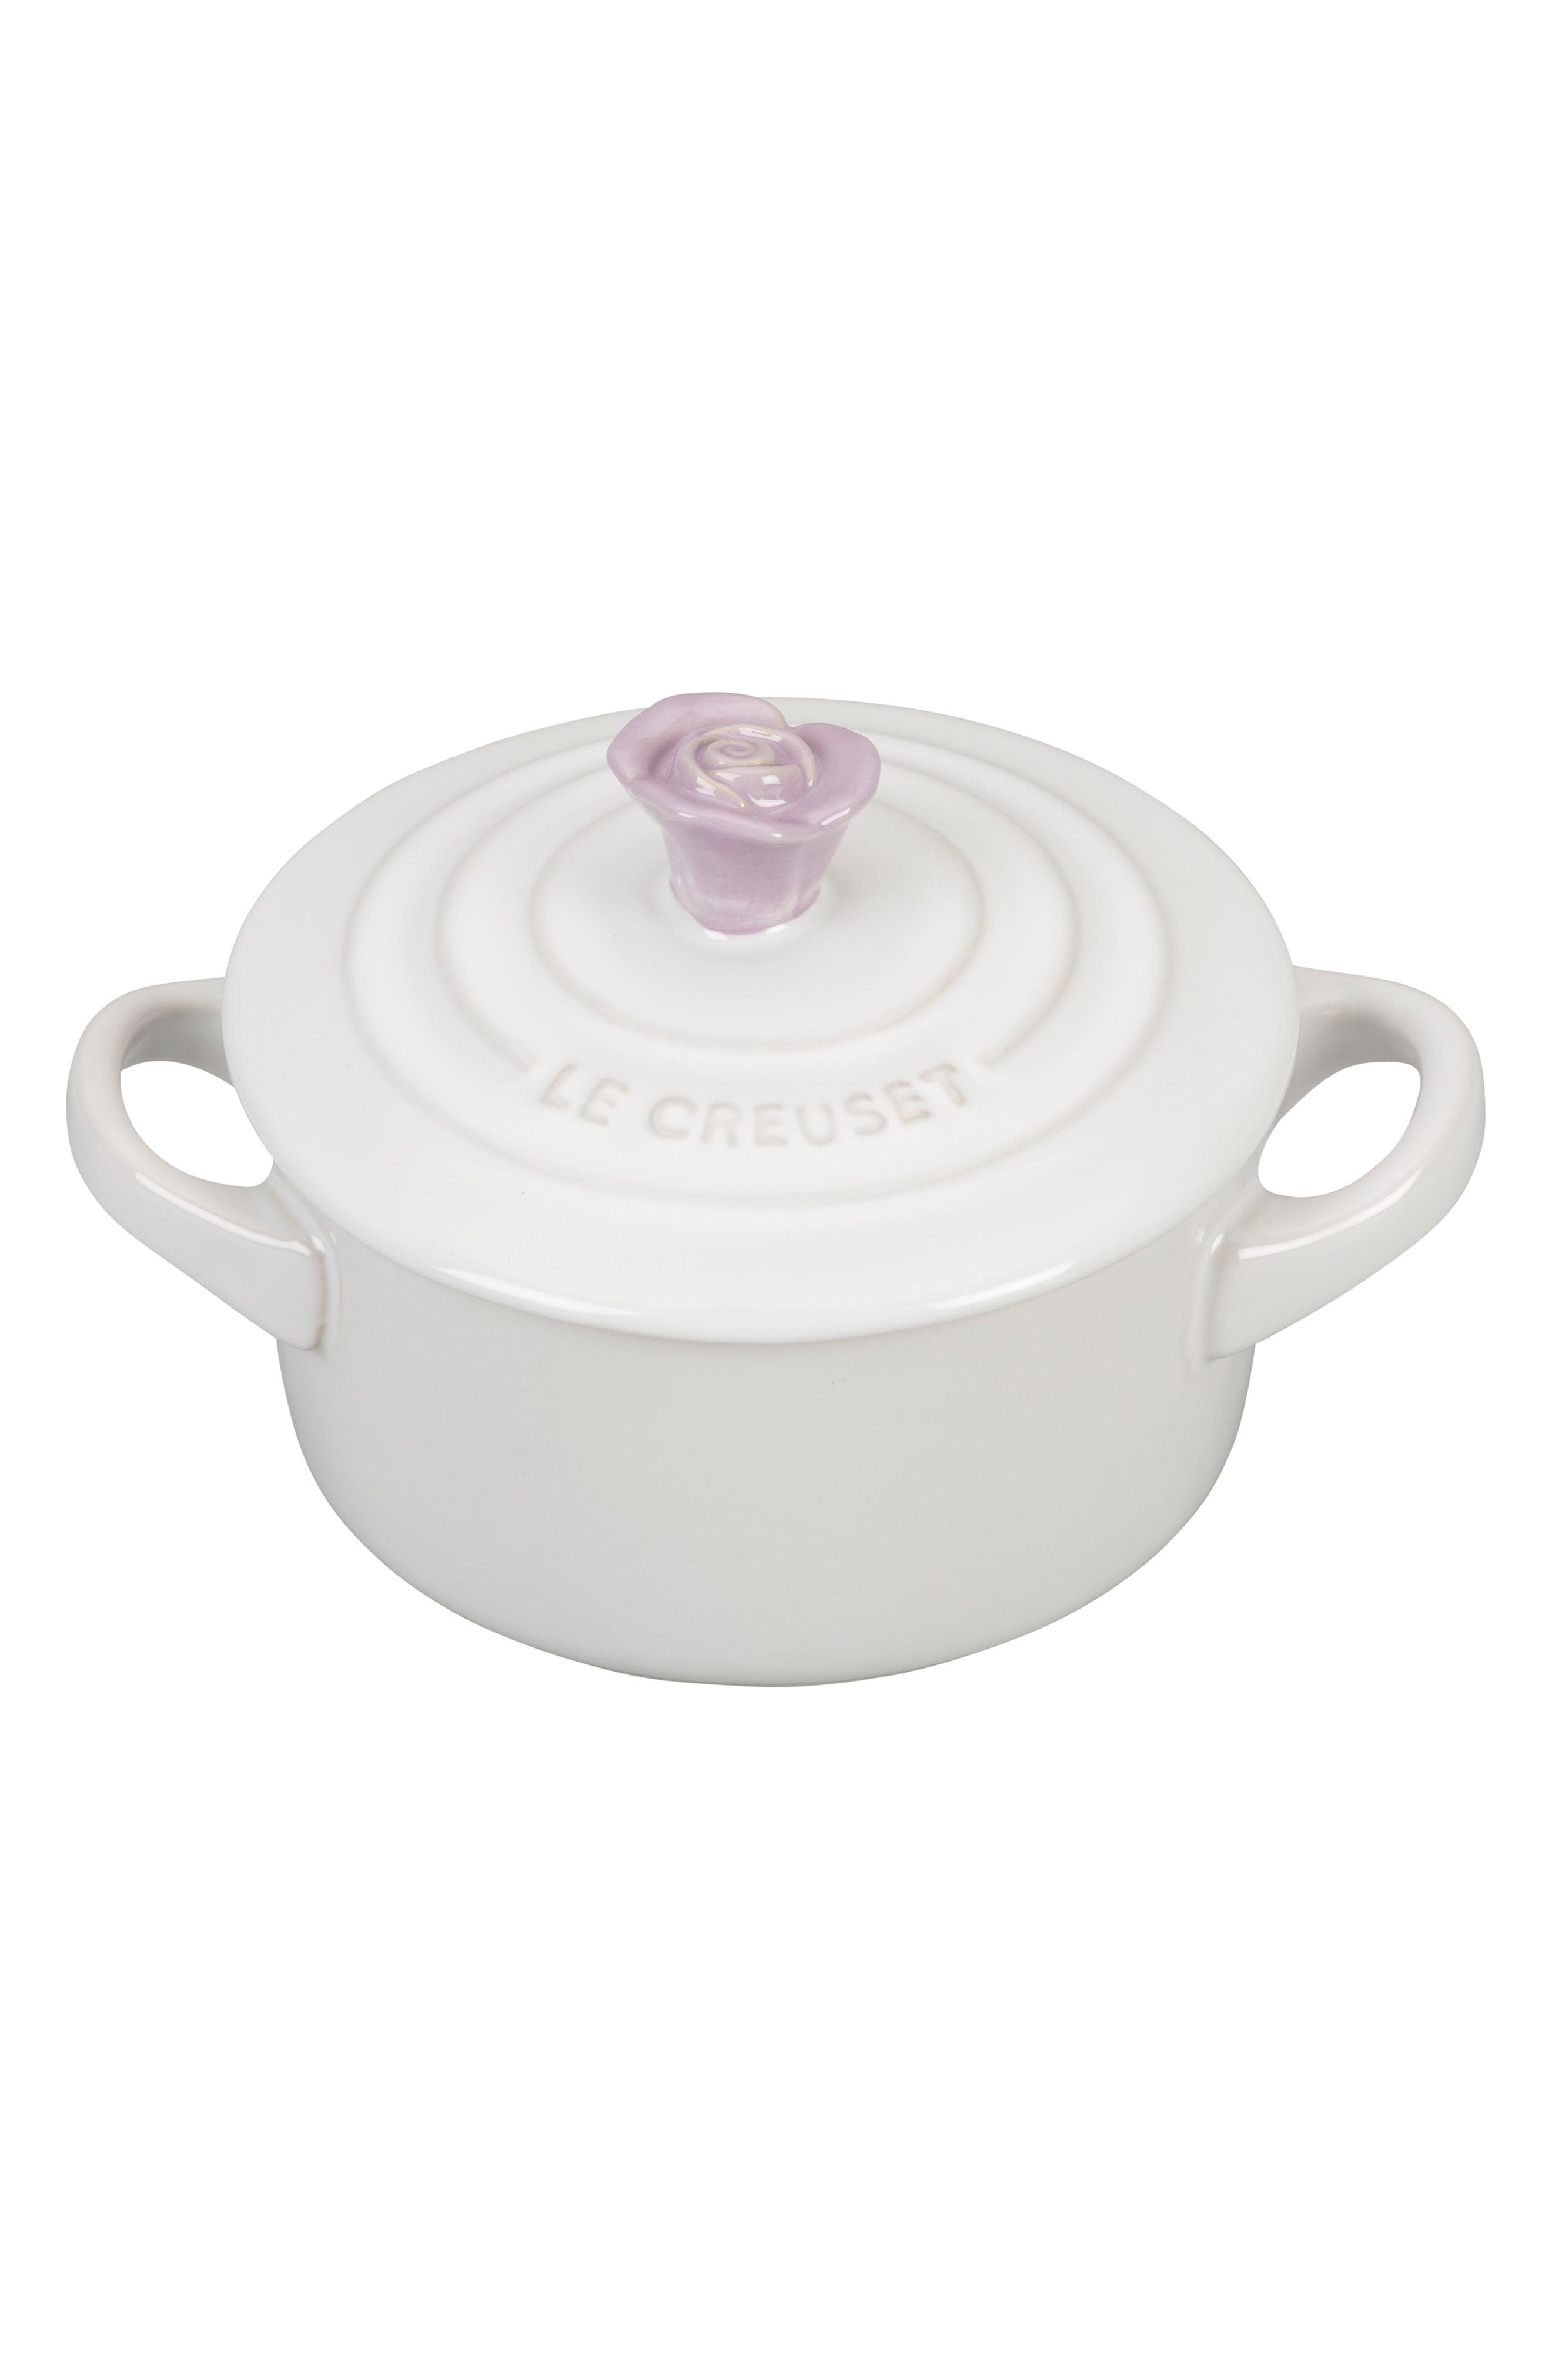 Flower Knob Mini Round Cocotte,                             Main thumbnail 1, color,                             PROVENCE